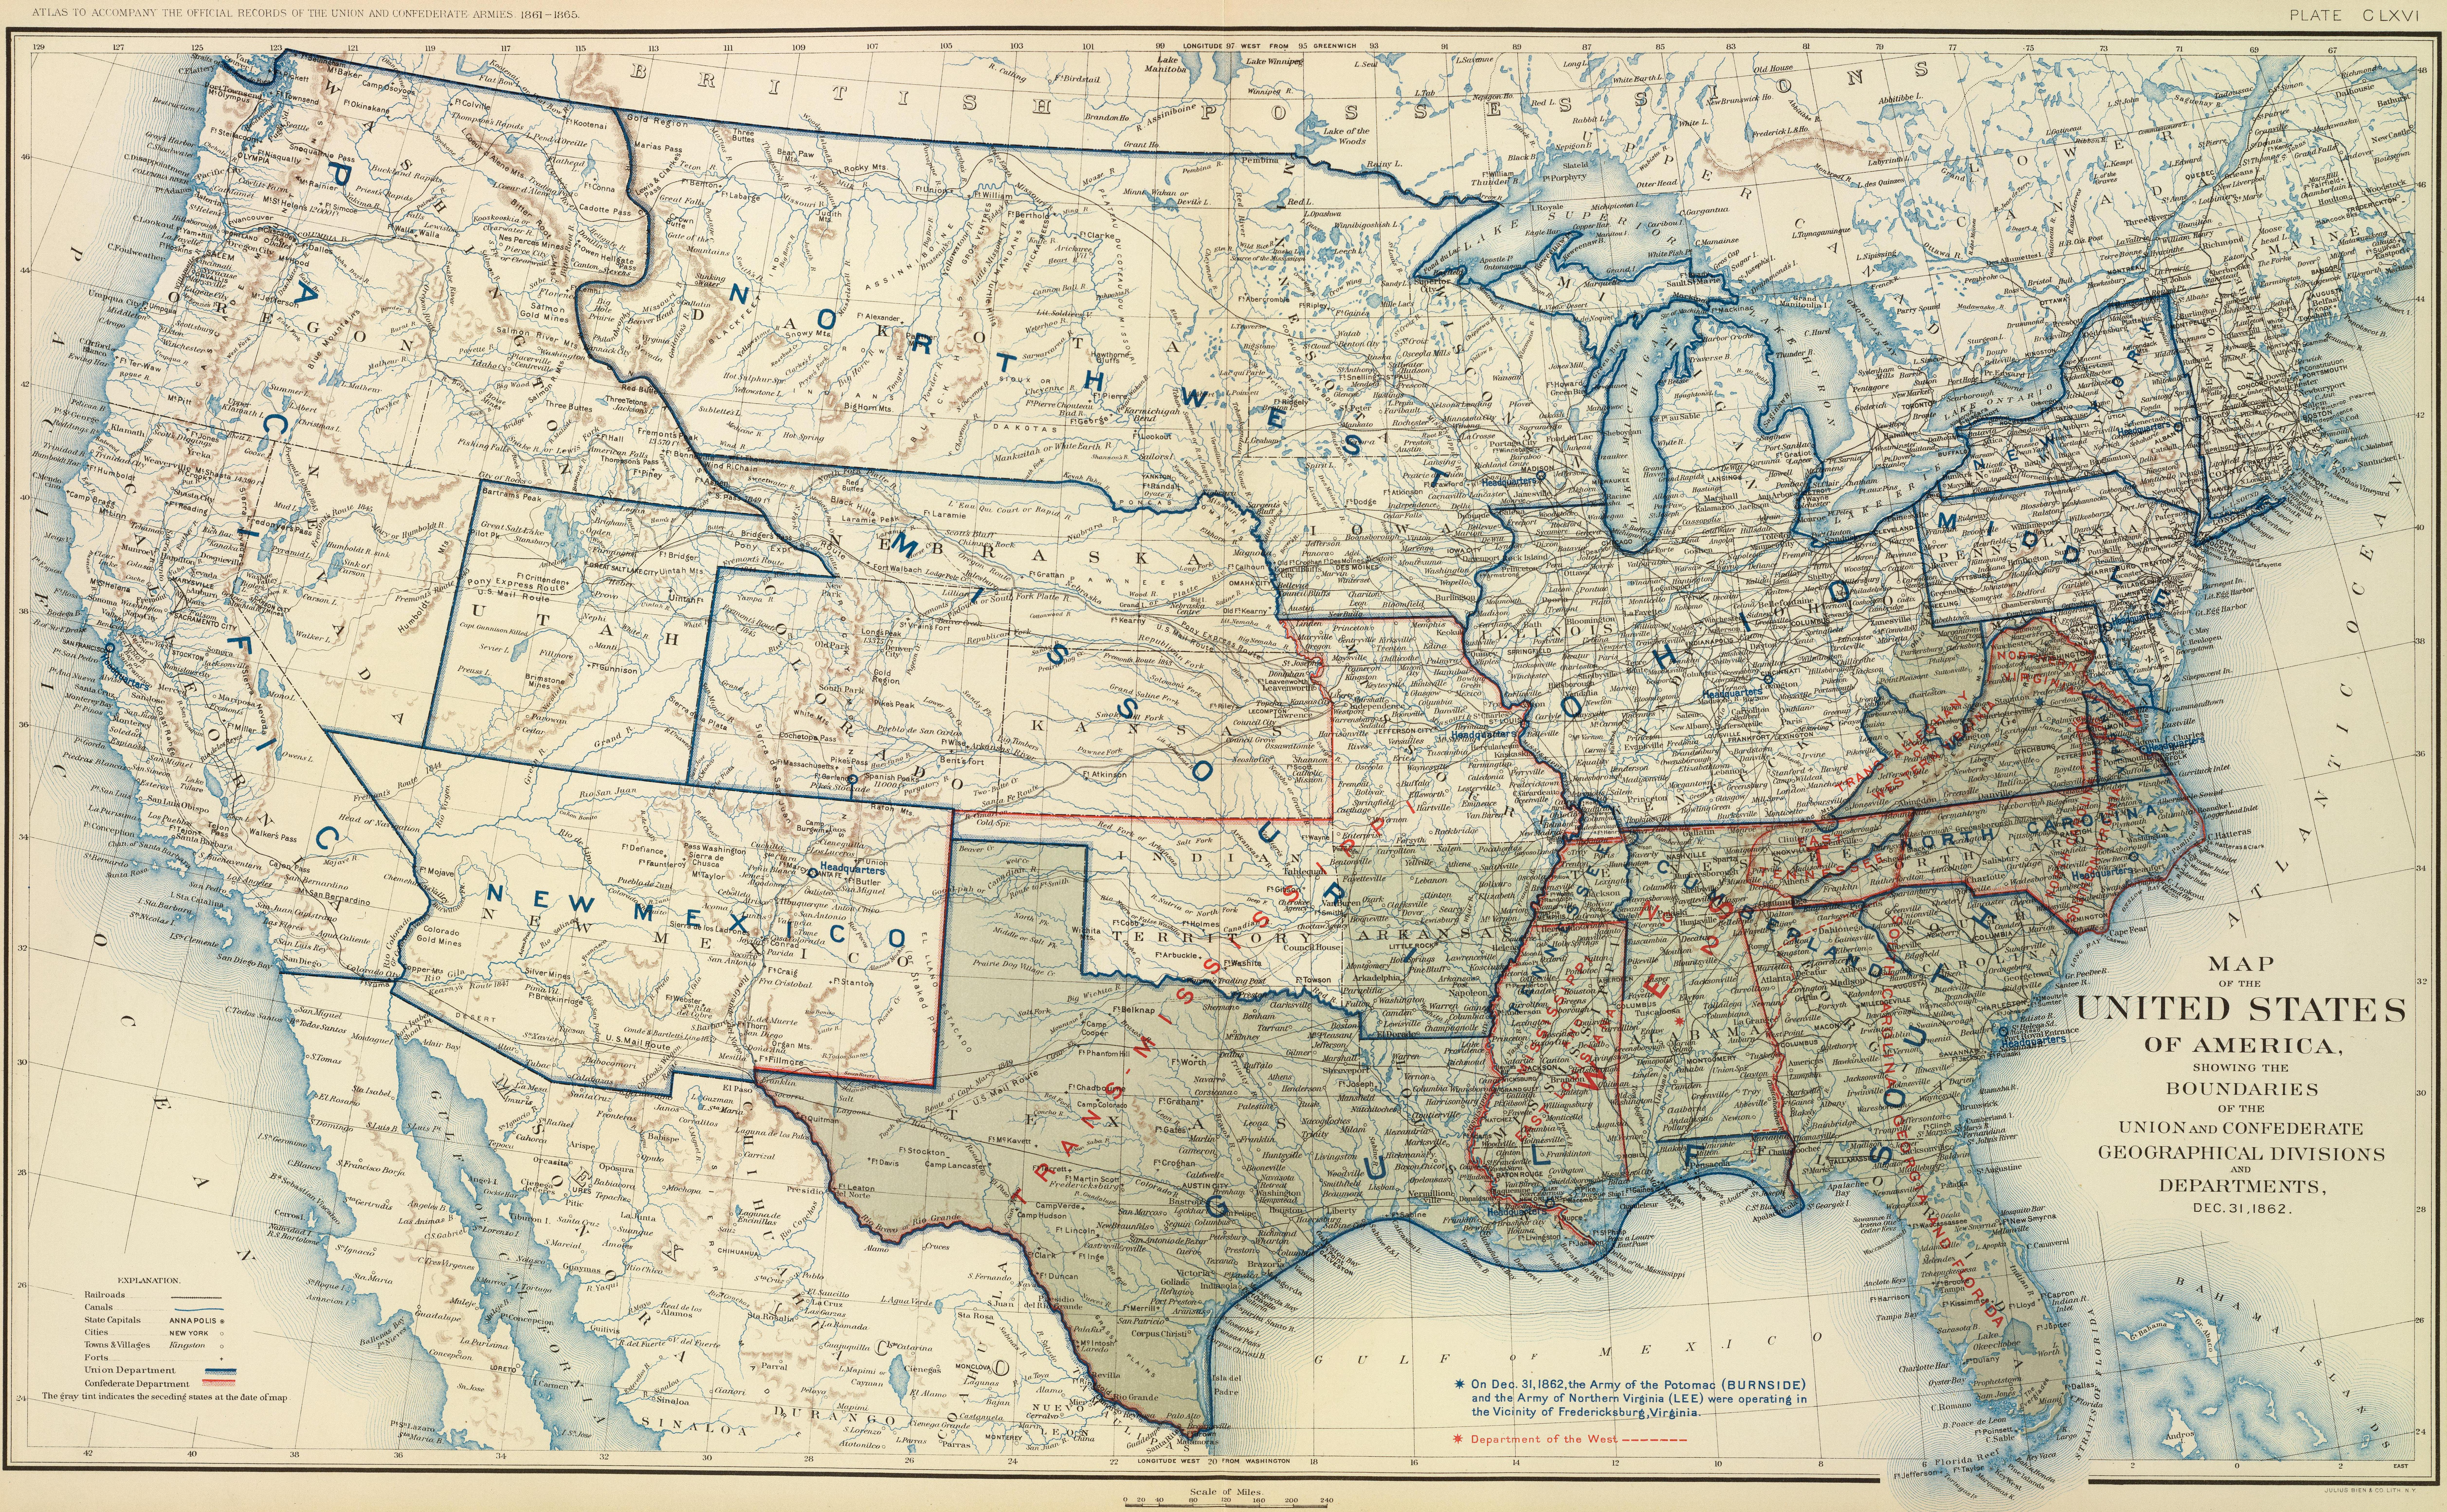 Civil War – US History I: Precolonial to Gilded Age